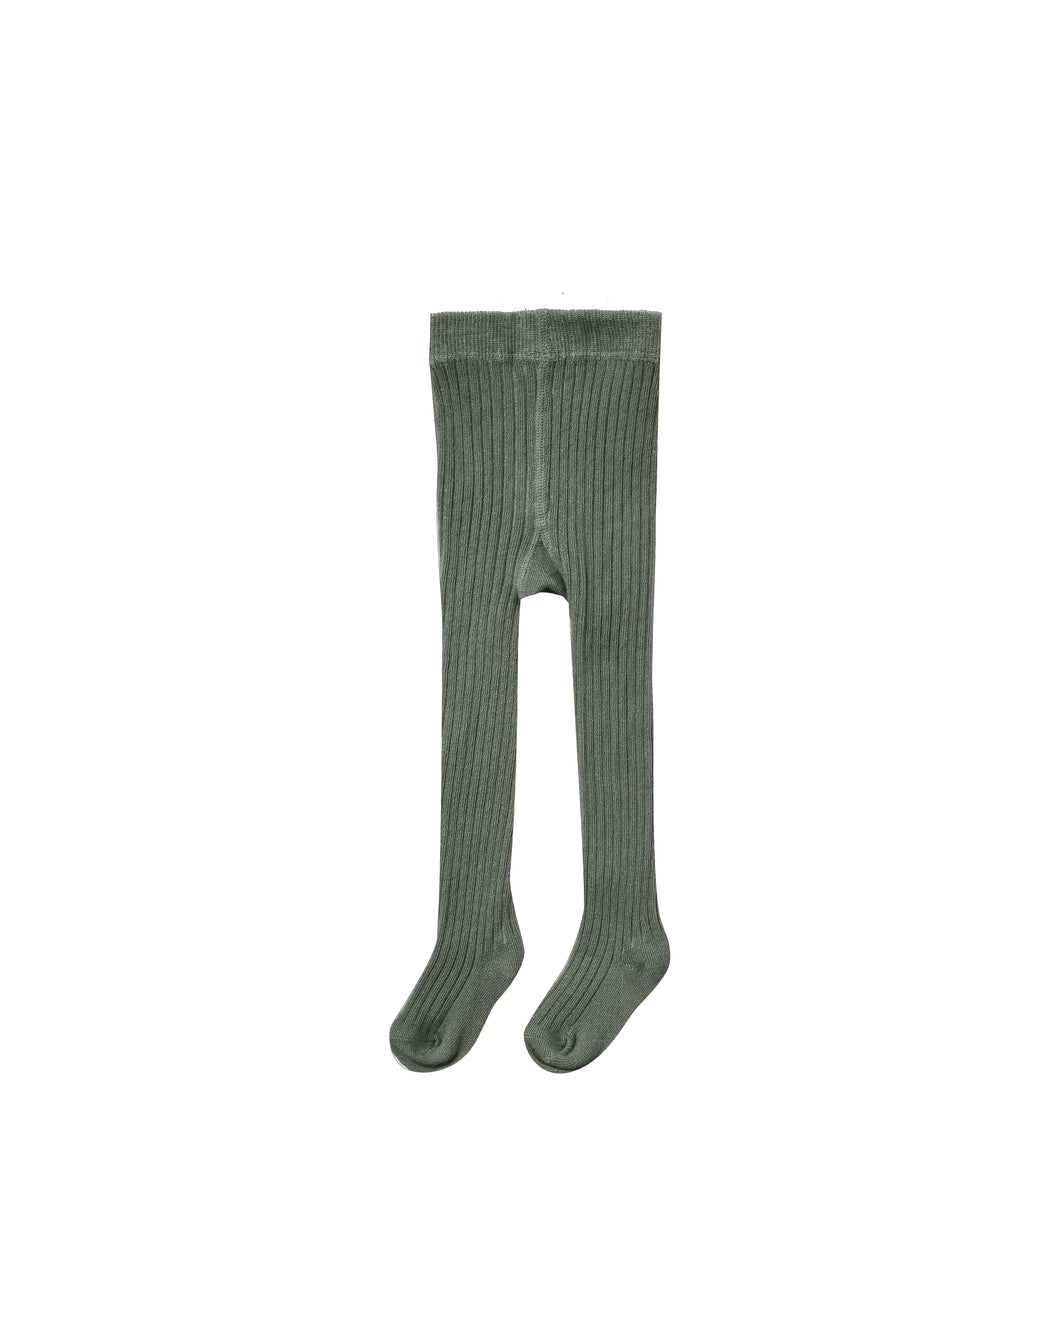 Solid ribbed tights - forest